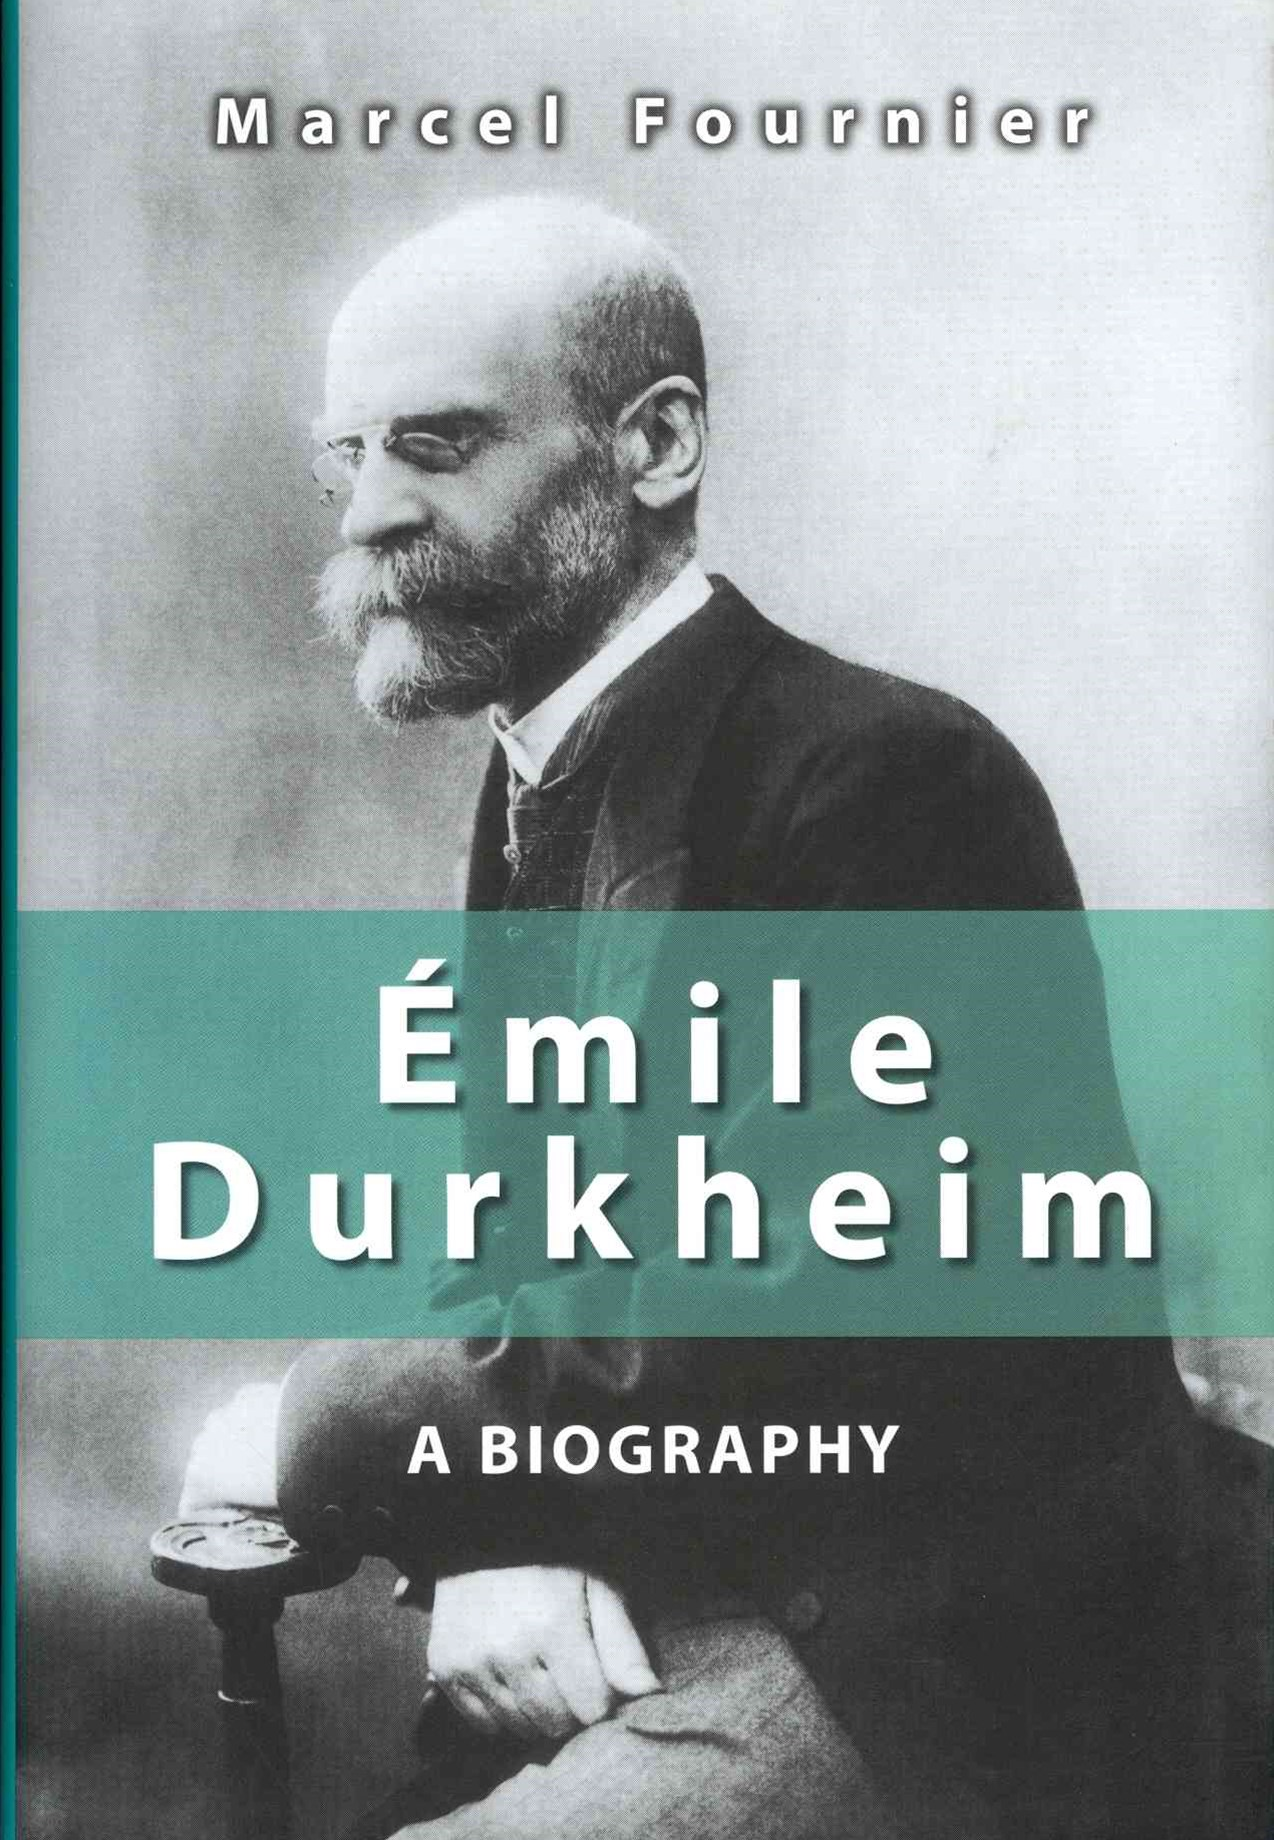 Emile Durkheim - a Biography